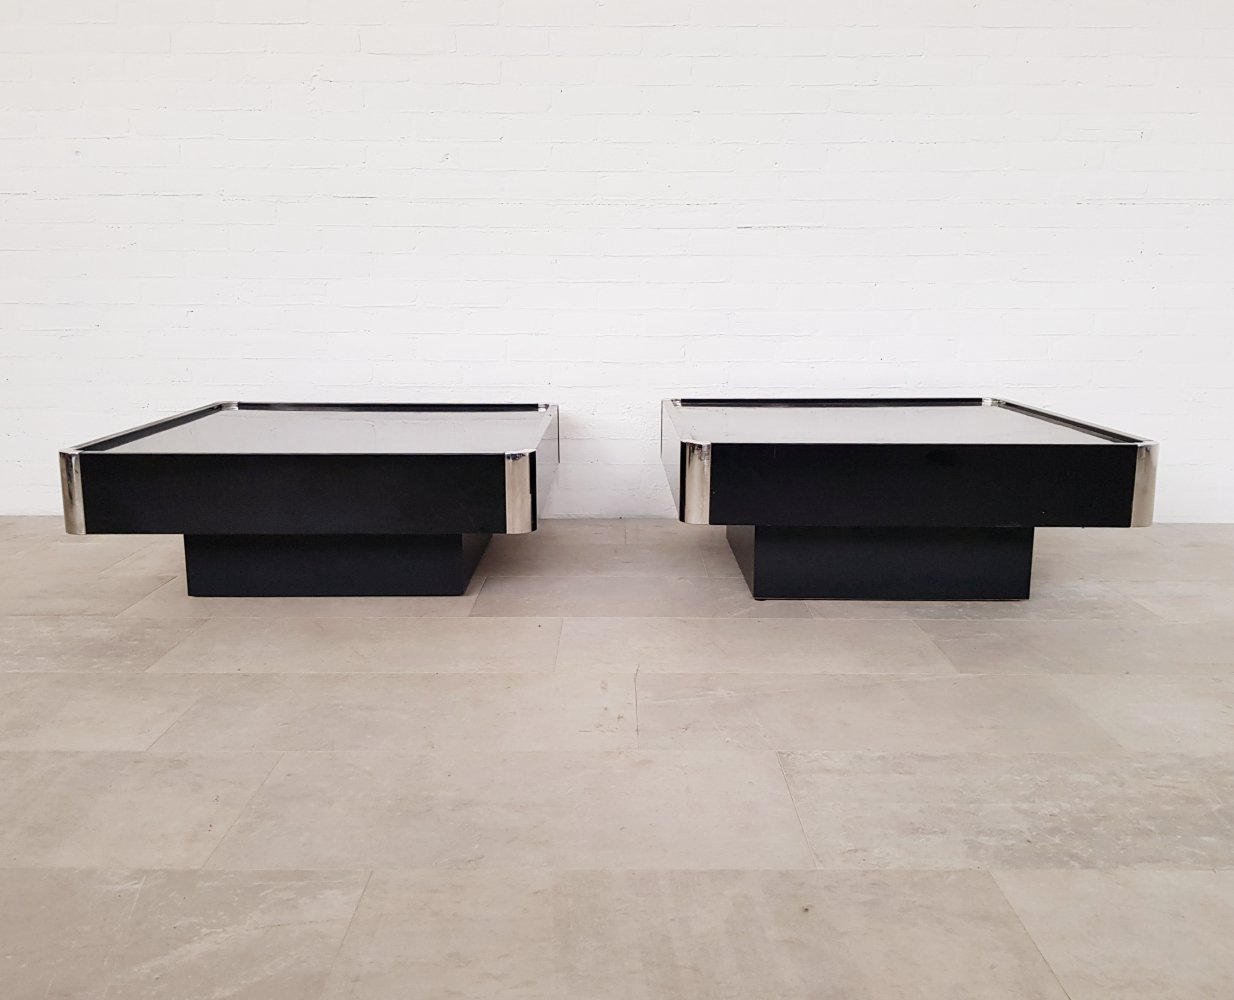 Set of 2 Black Lacquered coffee tables by Willy Rizzo for Sabot, 1970s